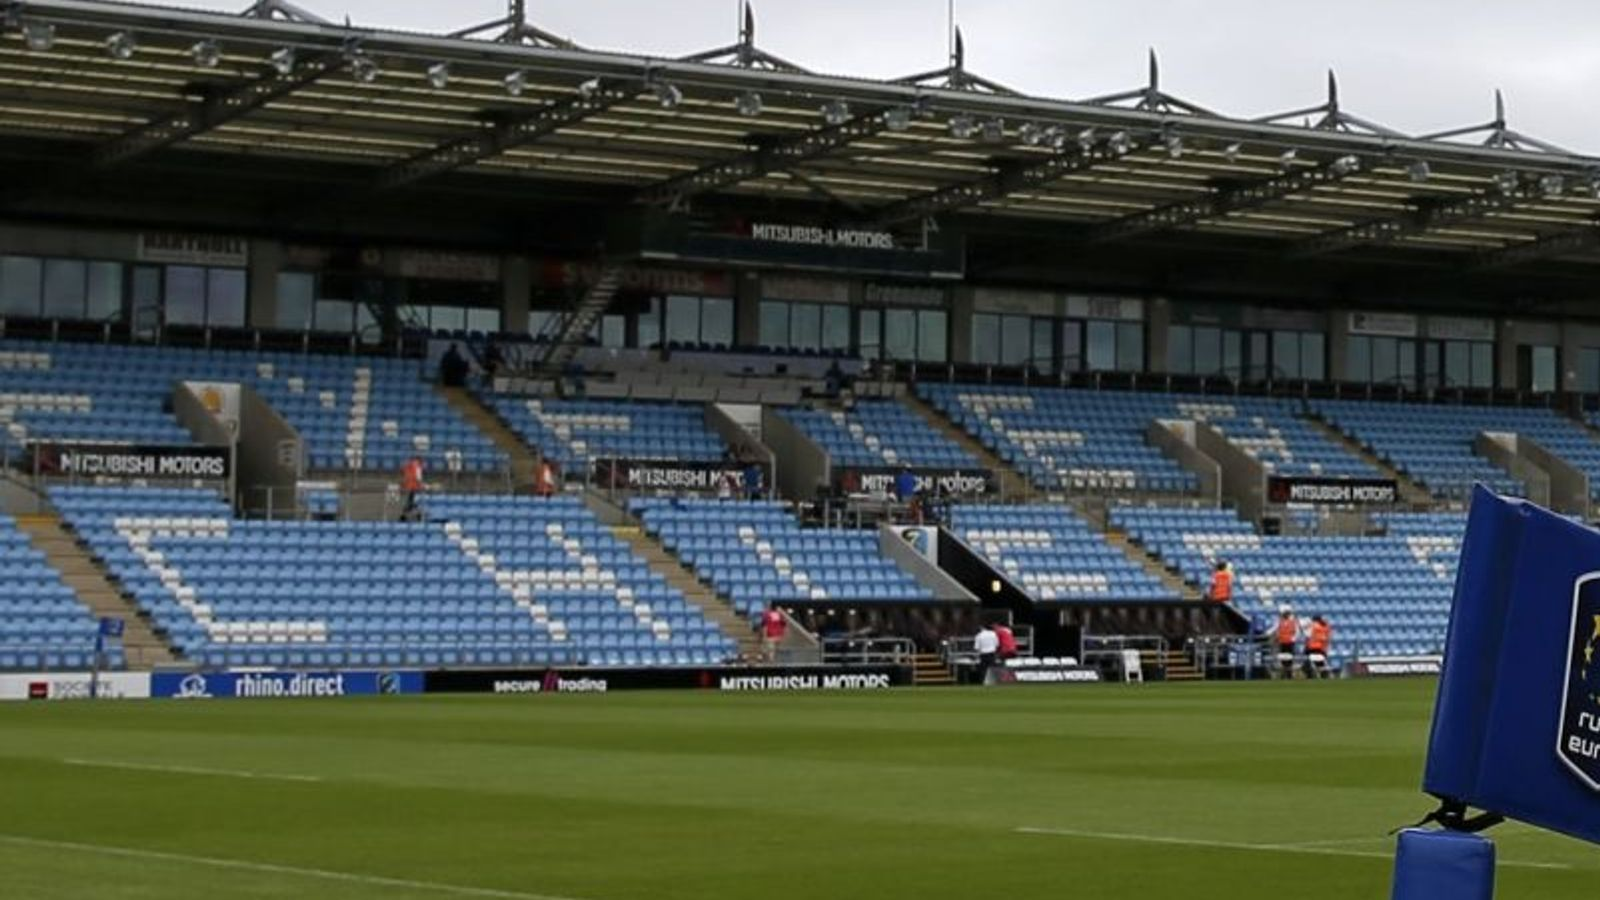 Exeter Chiefs chairman Tony Rowe fears Premiership clubs could go bust if fans don't return soon